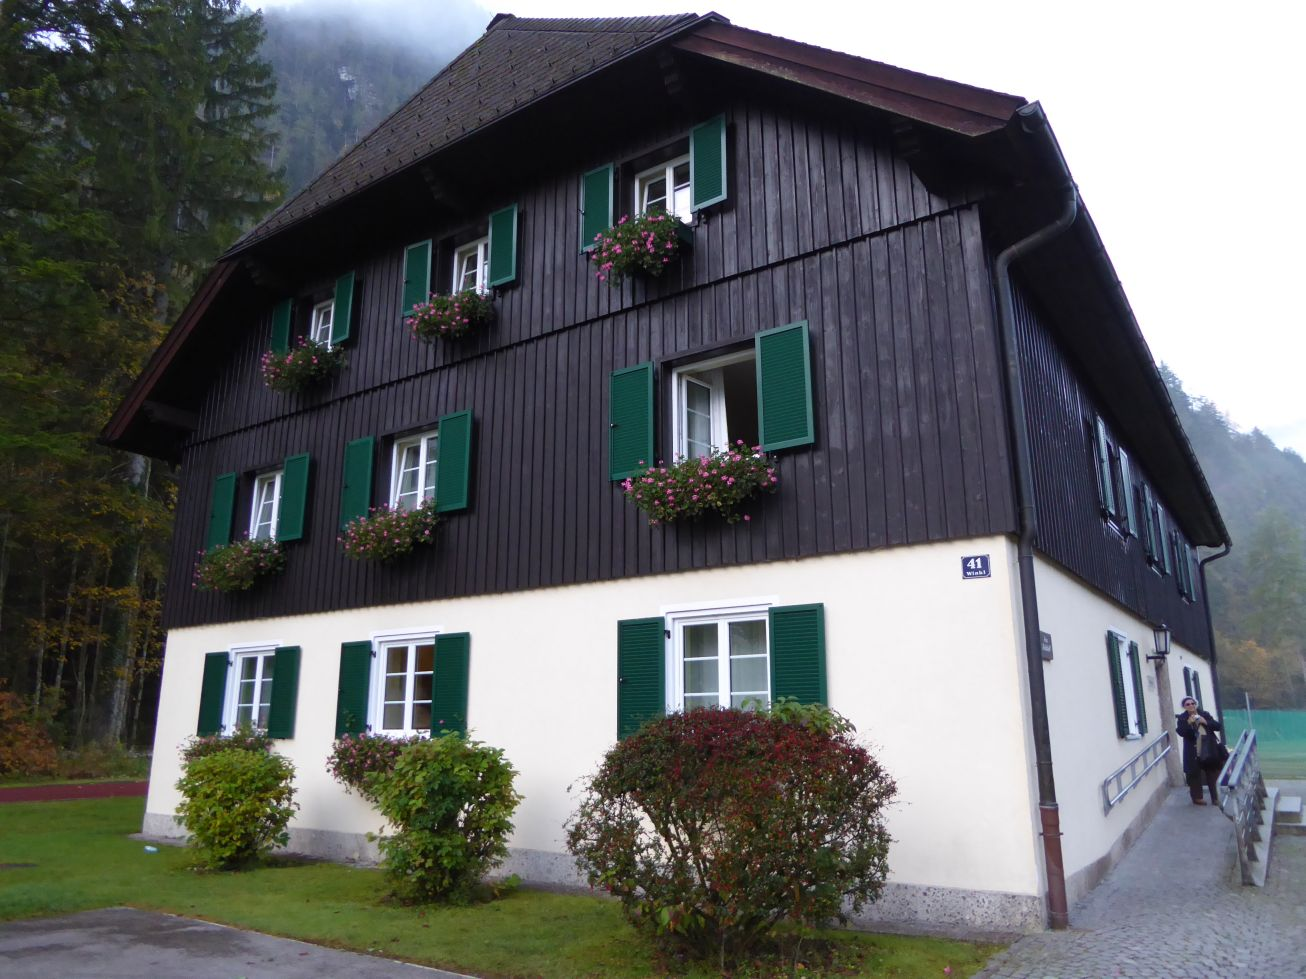 07-Hallstatt-JR-web